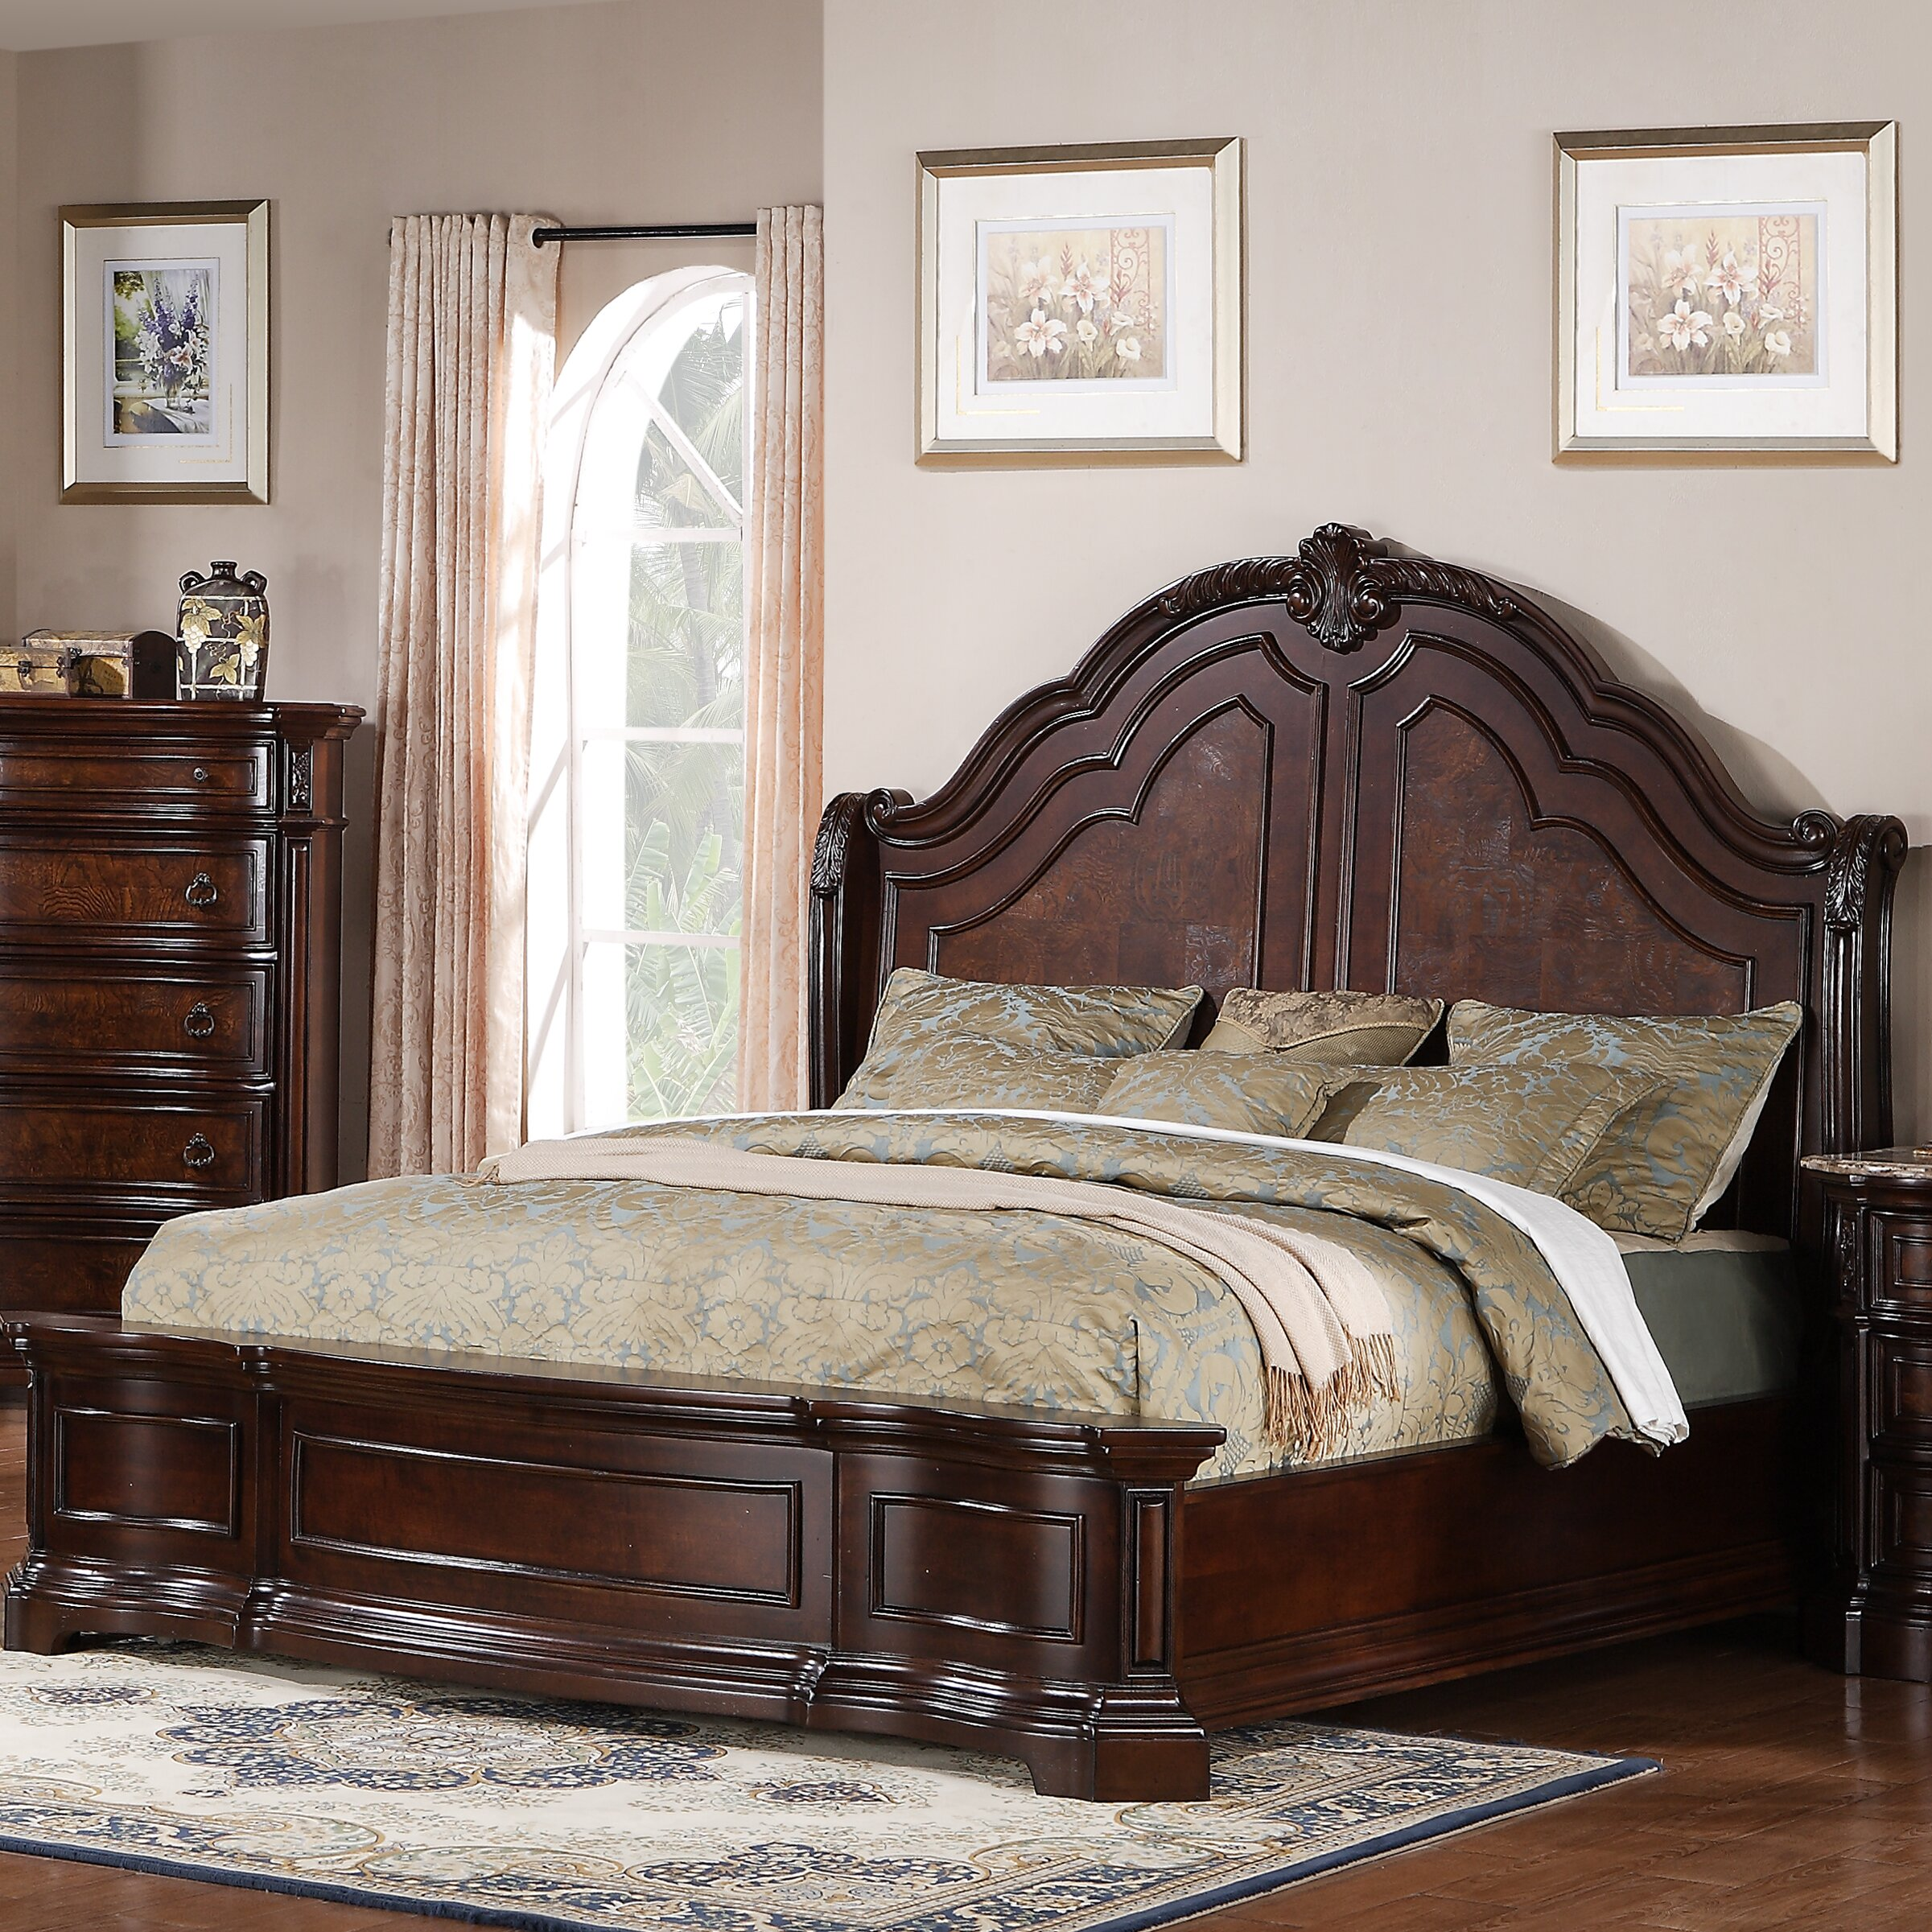 Baxendale Panel Bed Curved Low Footboard Bed Wayfair  Sauder California  King Purple Beds Descargas Mundiales. Wooden Sauder Purple Beds   thegibbonsschool com